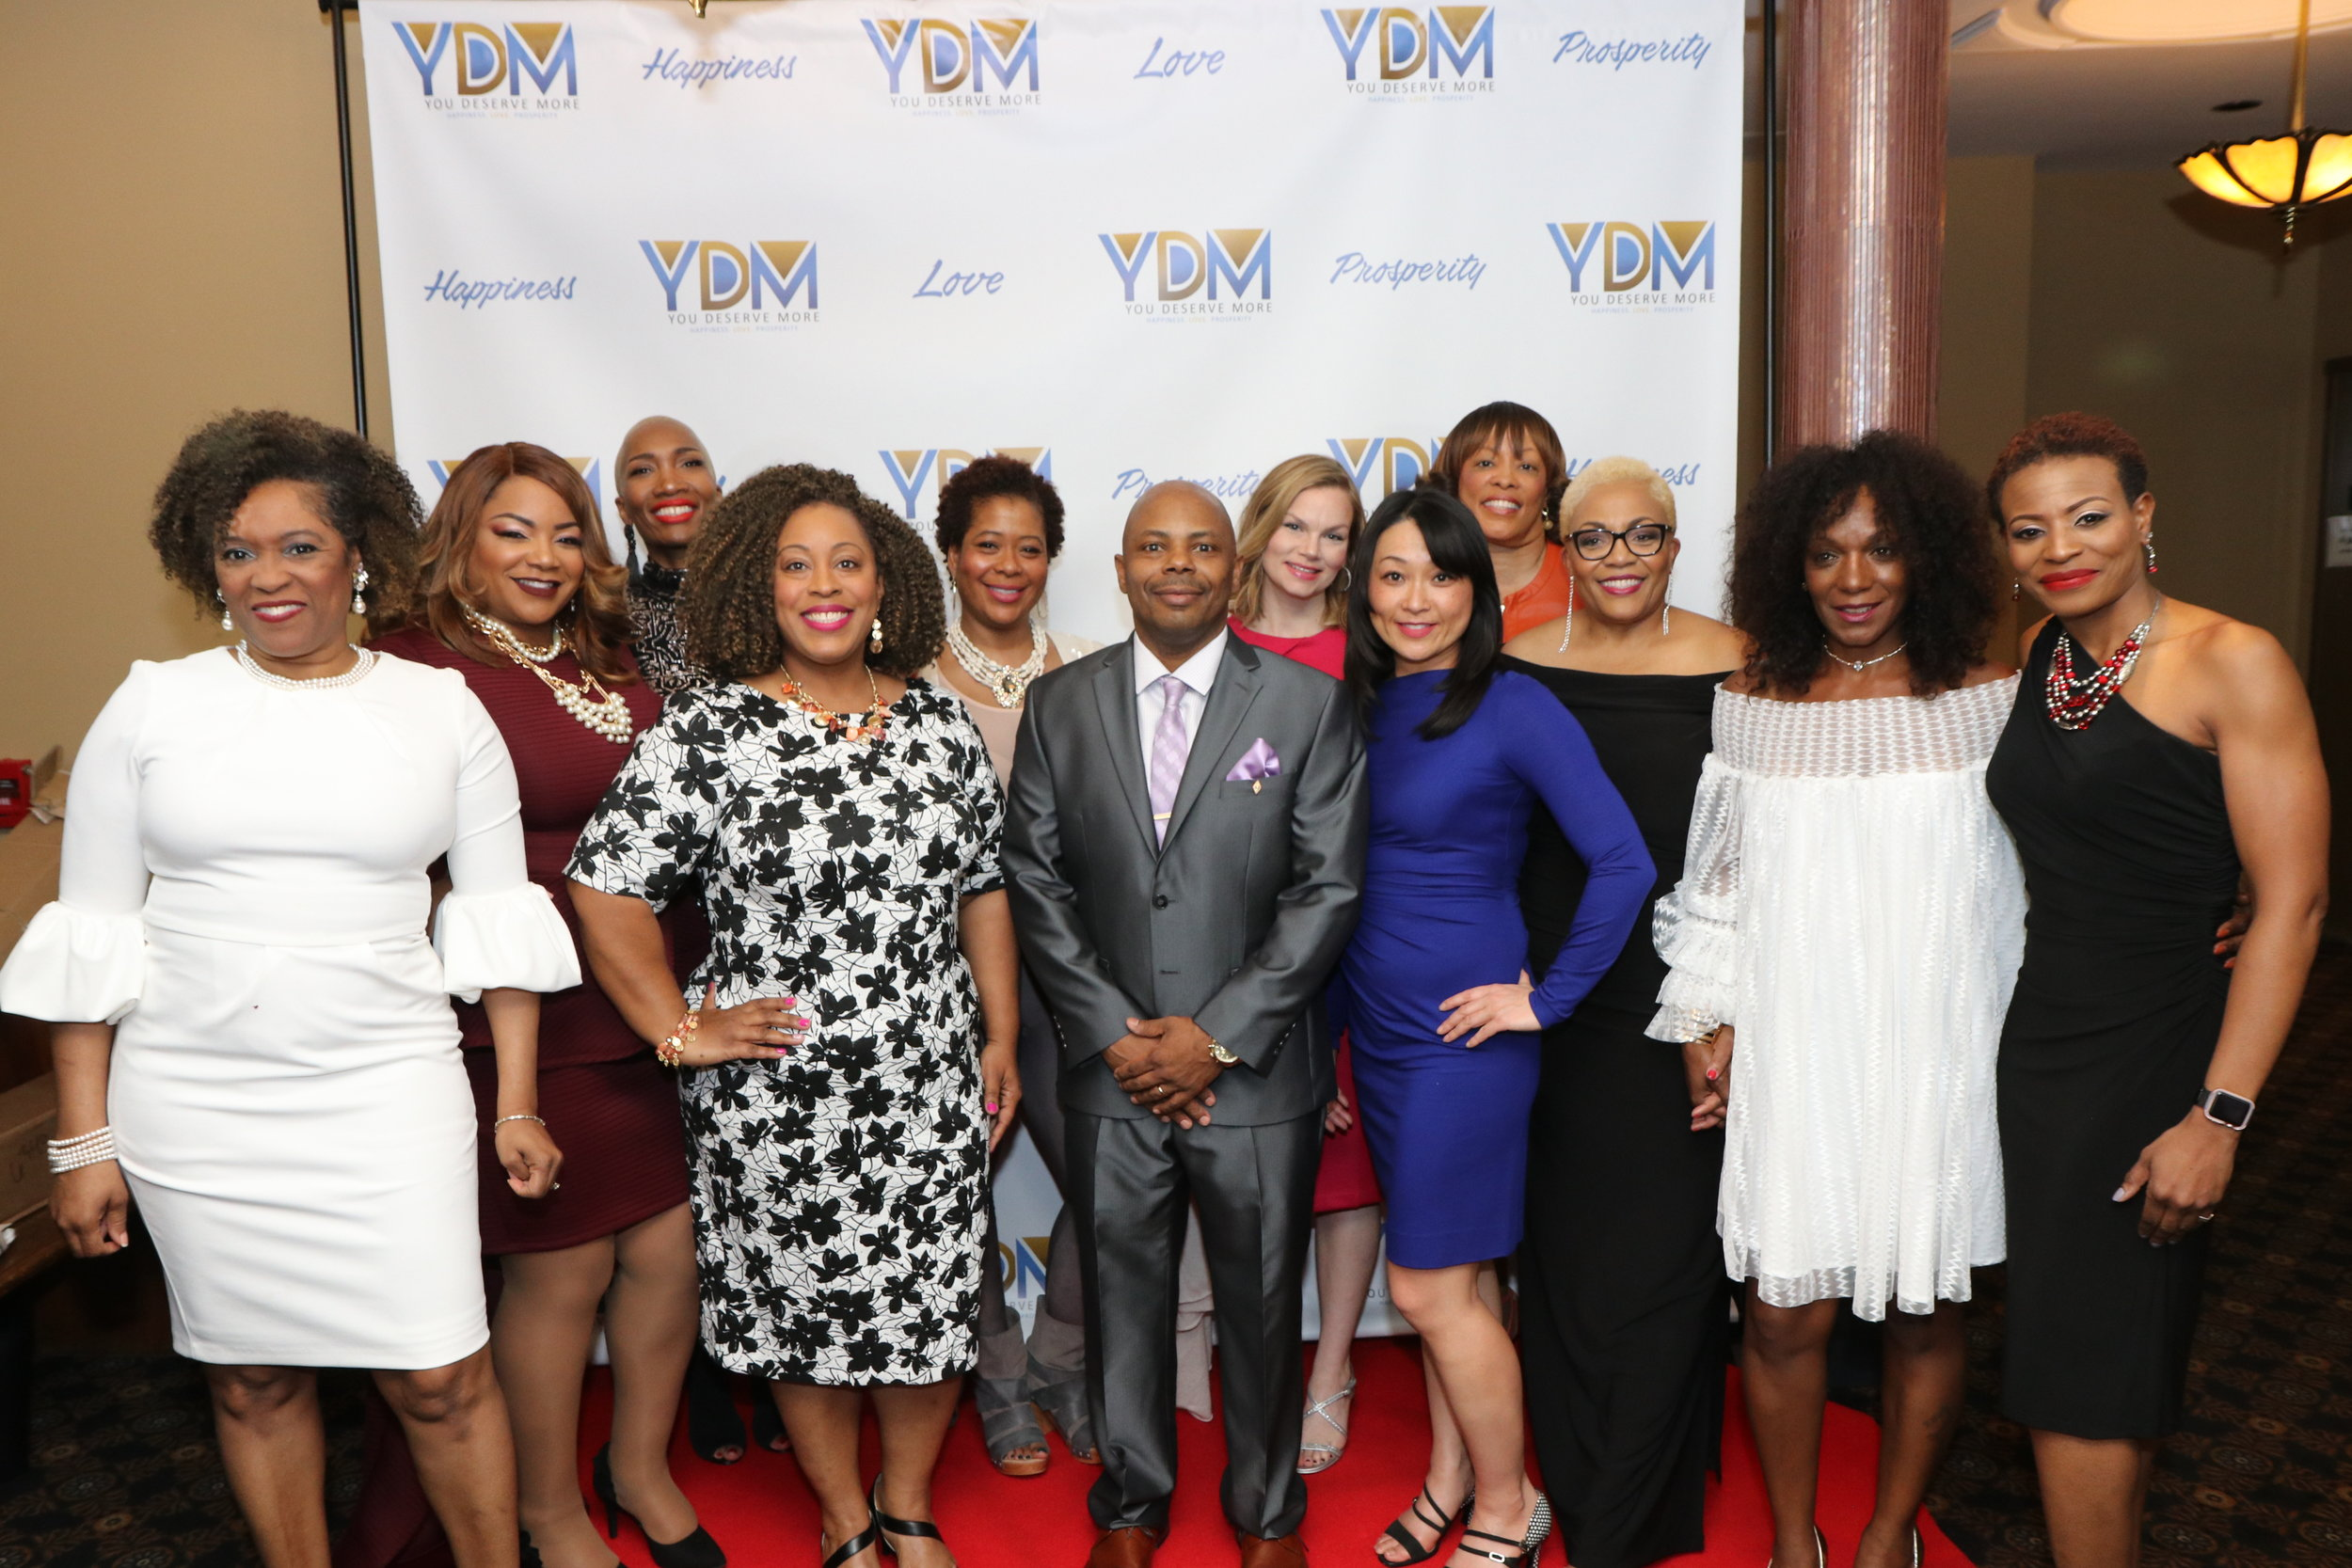 THE CAST (From left to right) and (Center) - Executive Producer and Director, Dr. Dwayne L. Buckingham  Cynthia Greene, Malaysia Gresham Harell, Tonie Restrepo, Cheryl Wood, Towan Isom, Leandra Hahn, Kimi Donahue, Dr. Karen Bethea, Joan T. Randall, Gigi McMillan and Diedre Presley.